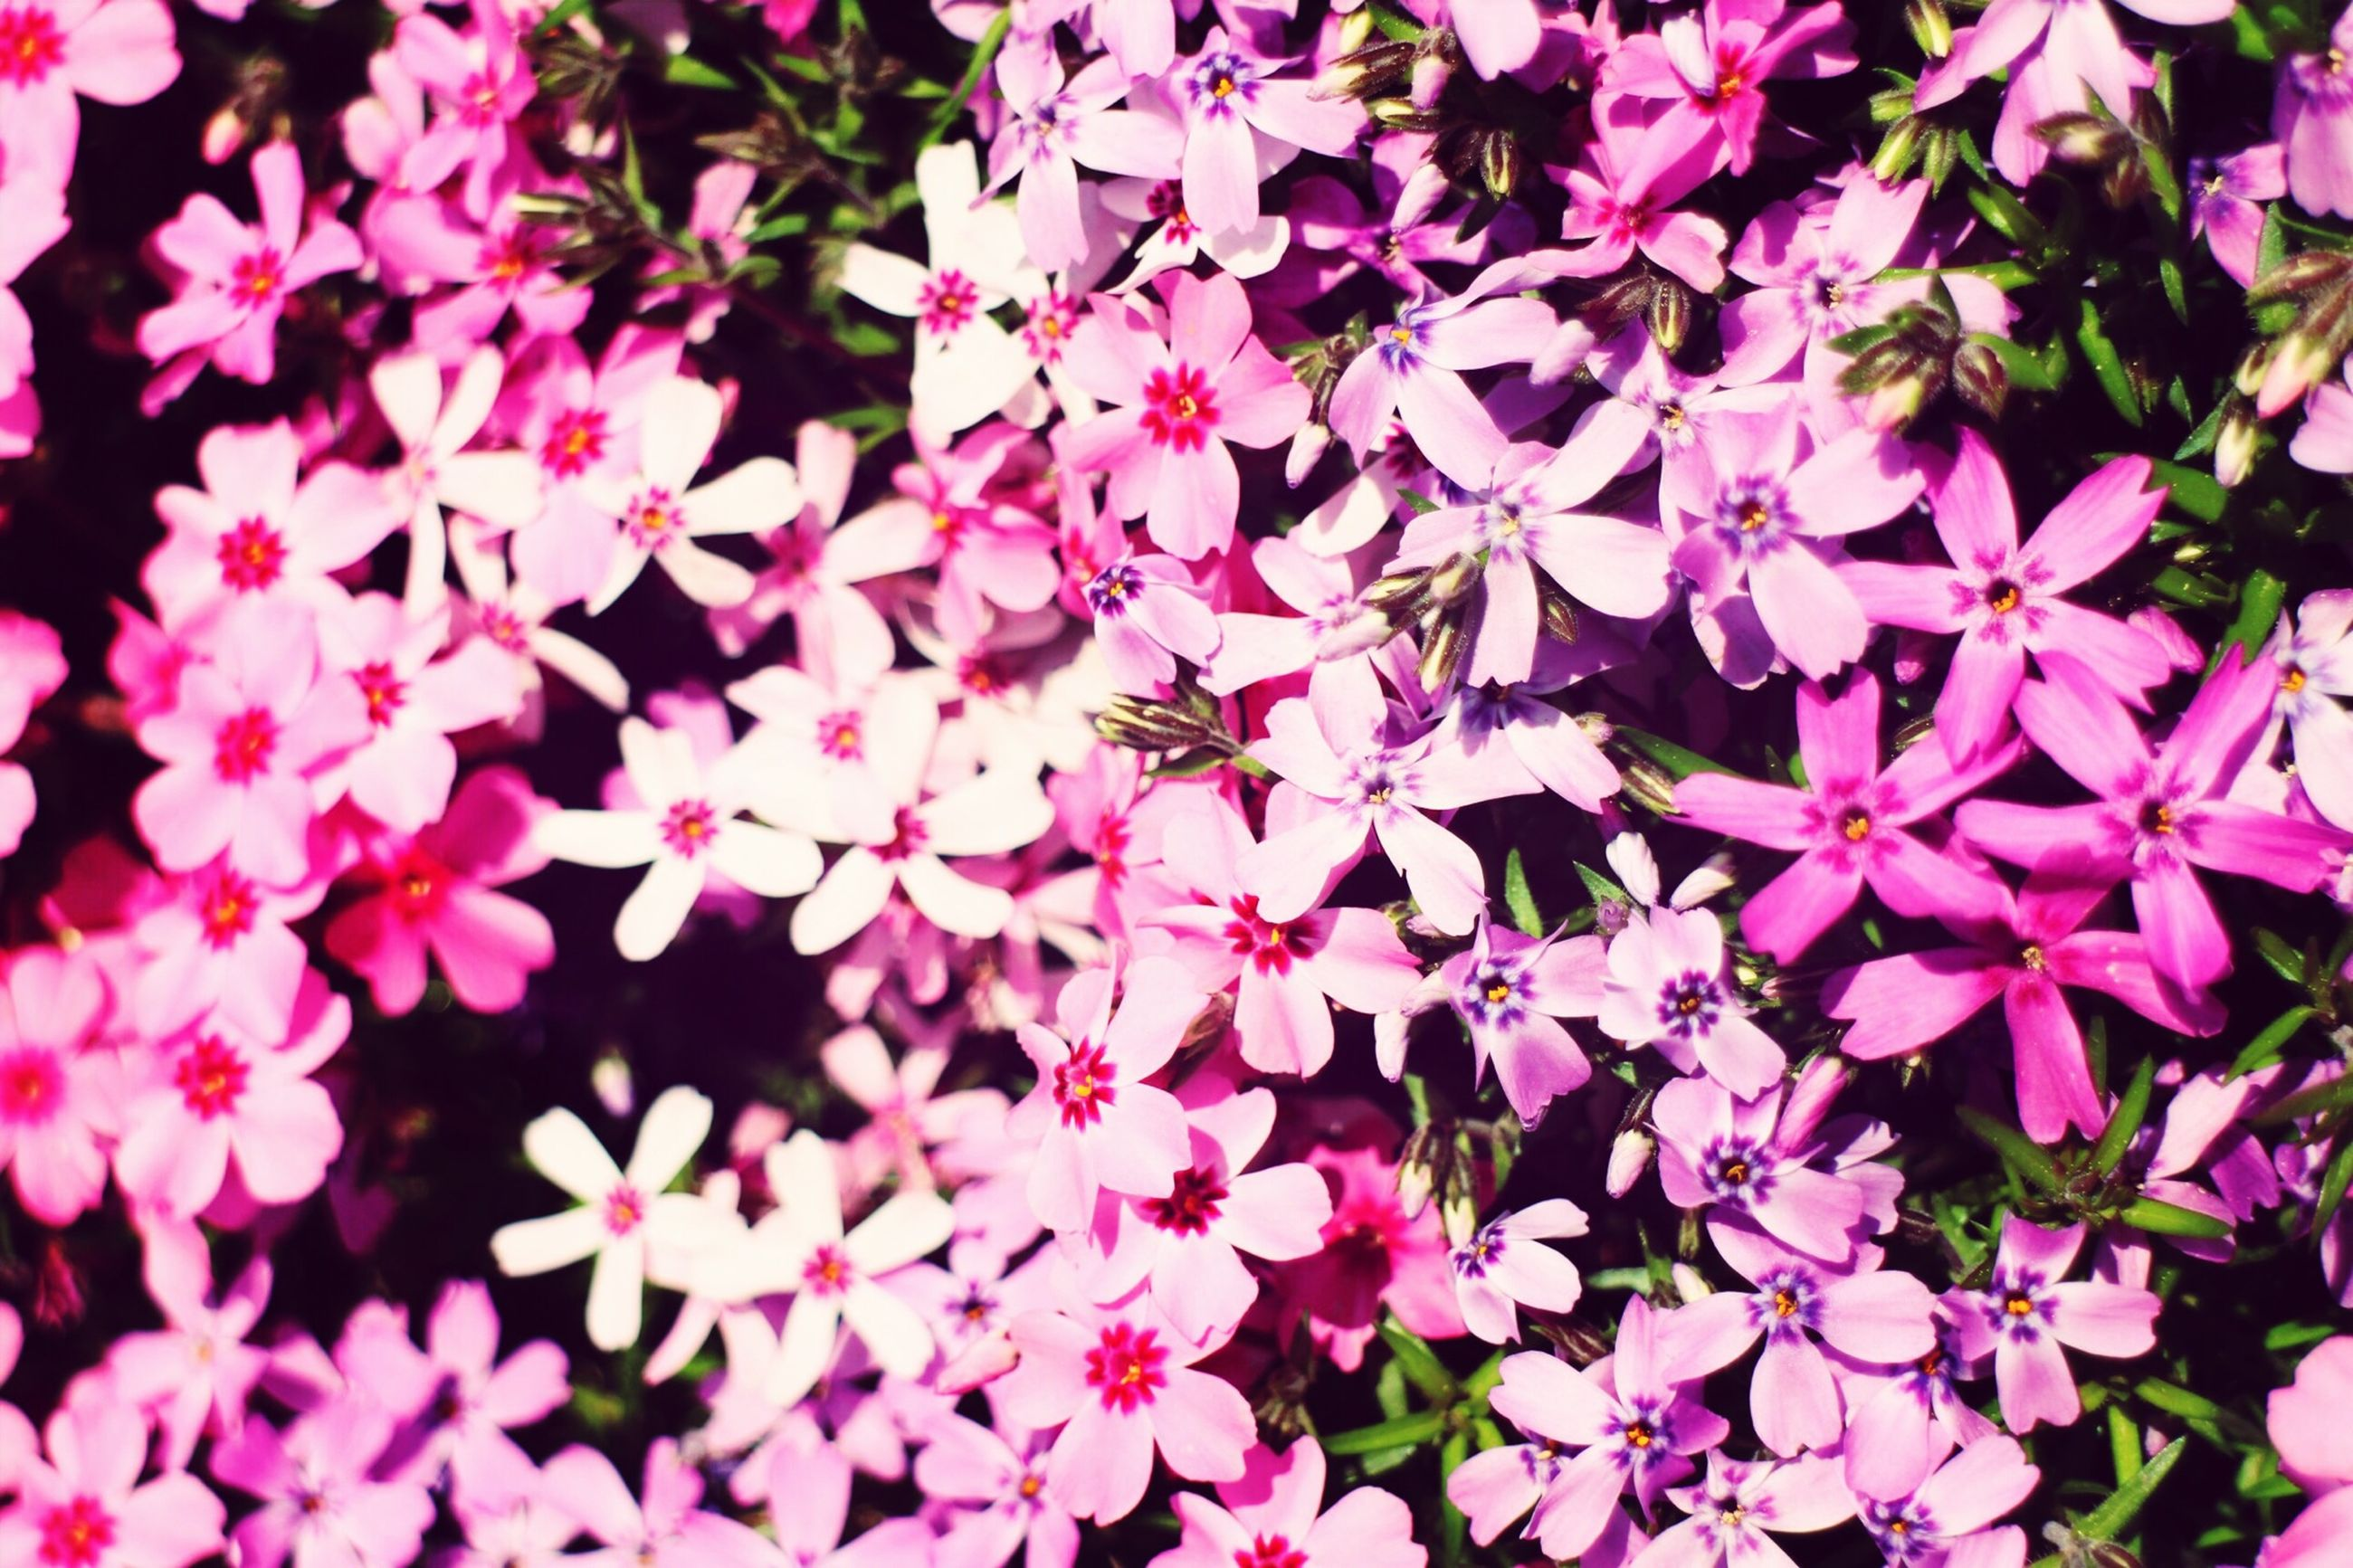 full frame, backgrounds, flower, pink color, growth, fragility, beauty in nature, nature, leaf, freshness, petal, plant, high angle view, close-up, outdoors, no people, day, abundance, season, park - man made space